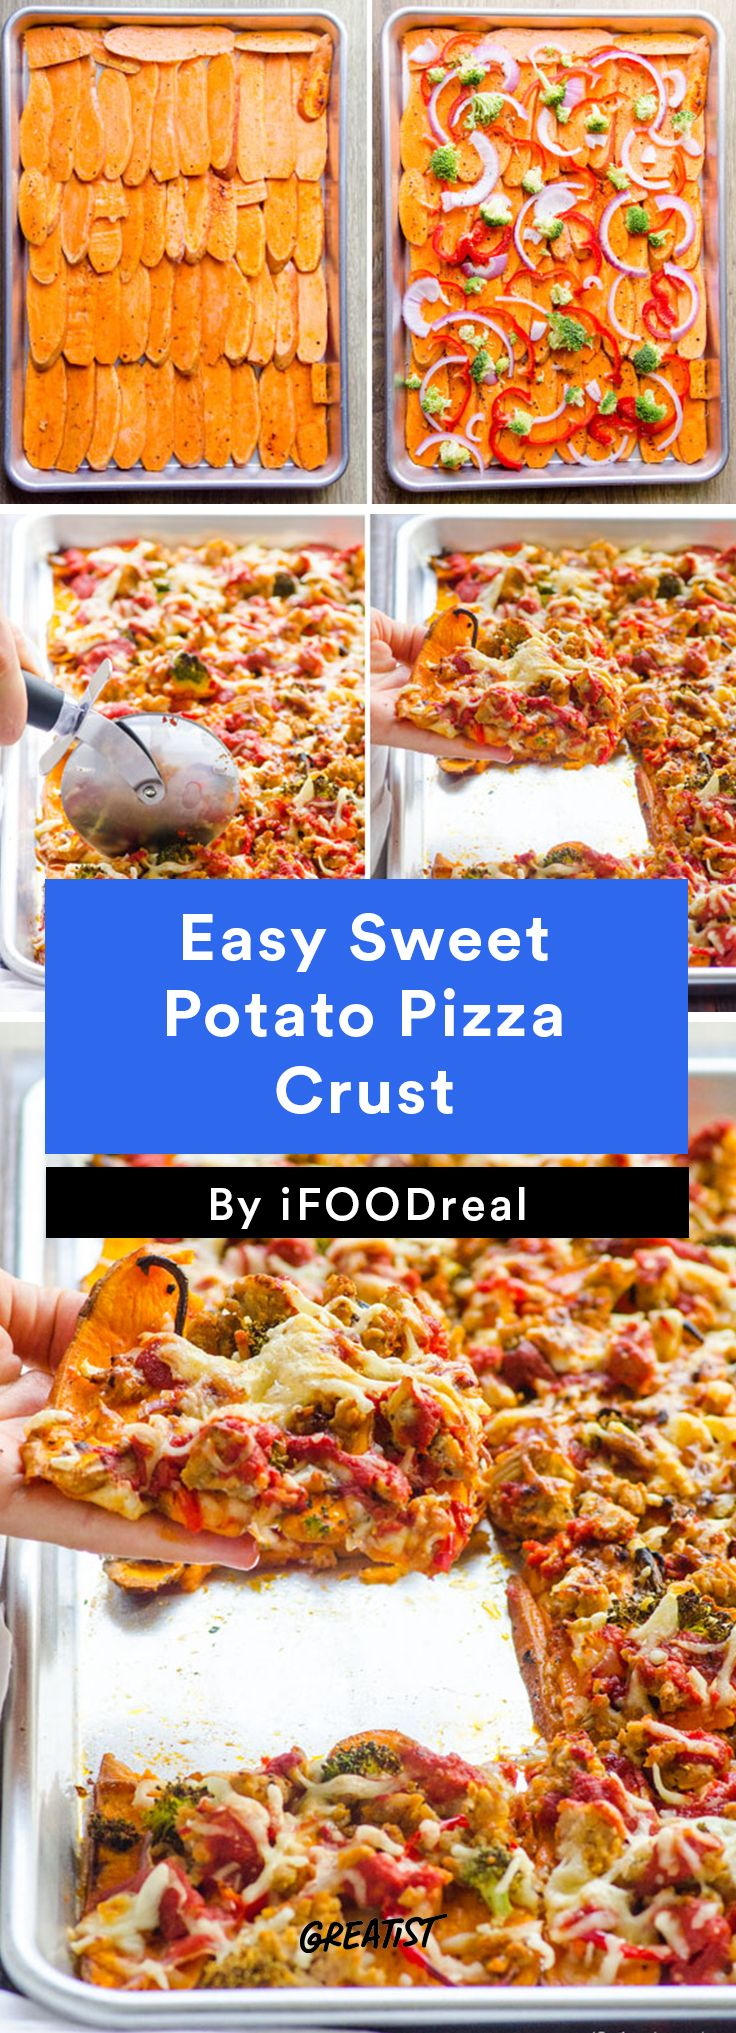 3. Easy Sweet Potato Pizza Crust #healthy #dinner #recipes http://greatist.com/eat/clean-eating-ground-turkey-recipes